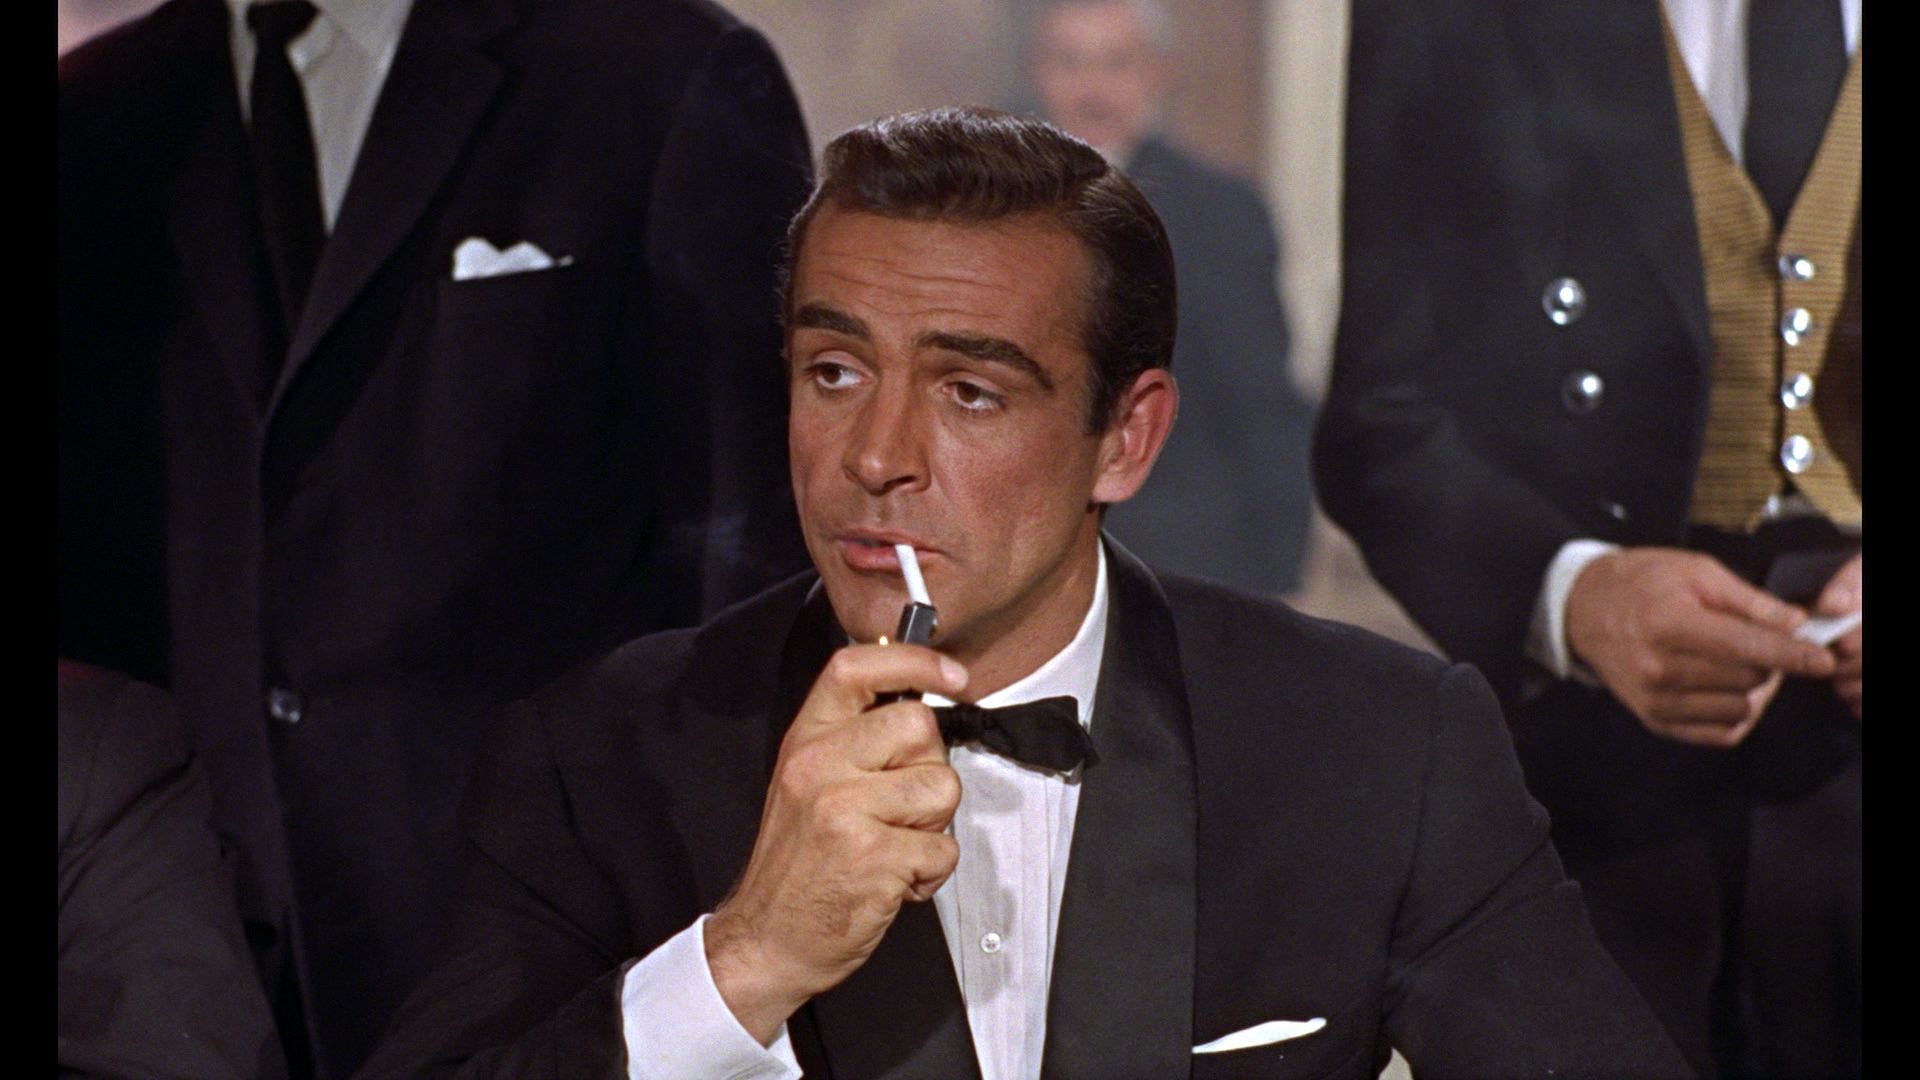 Sean Connery playing James Bond